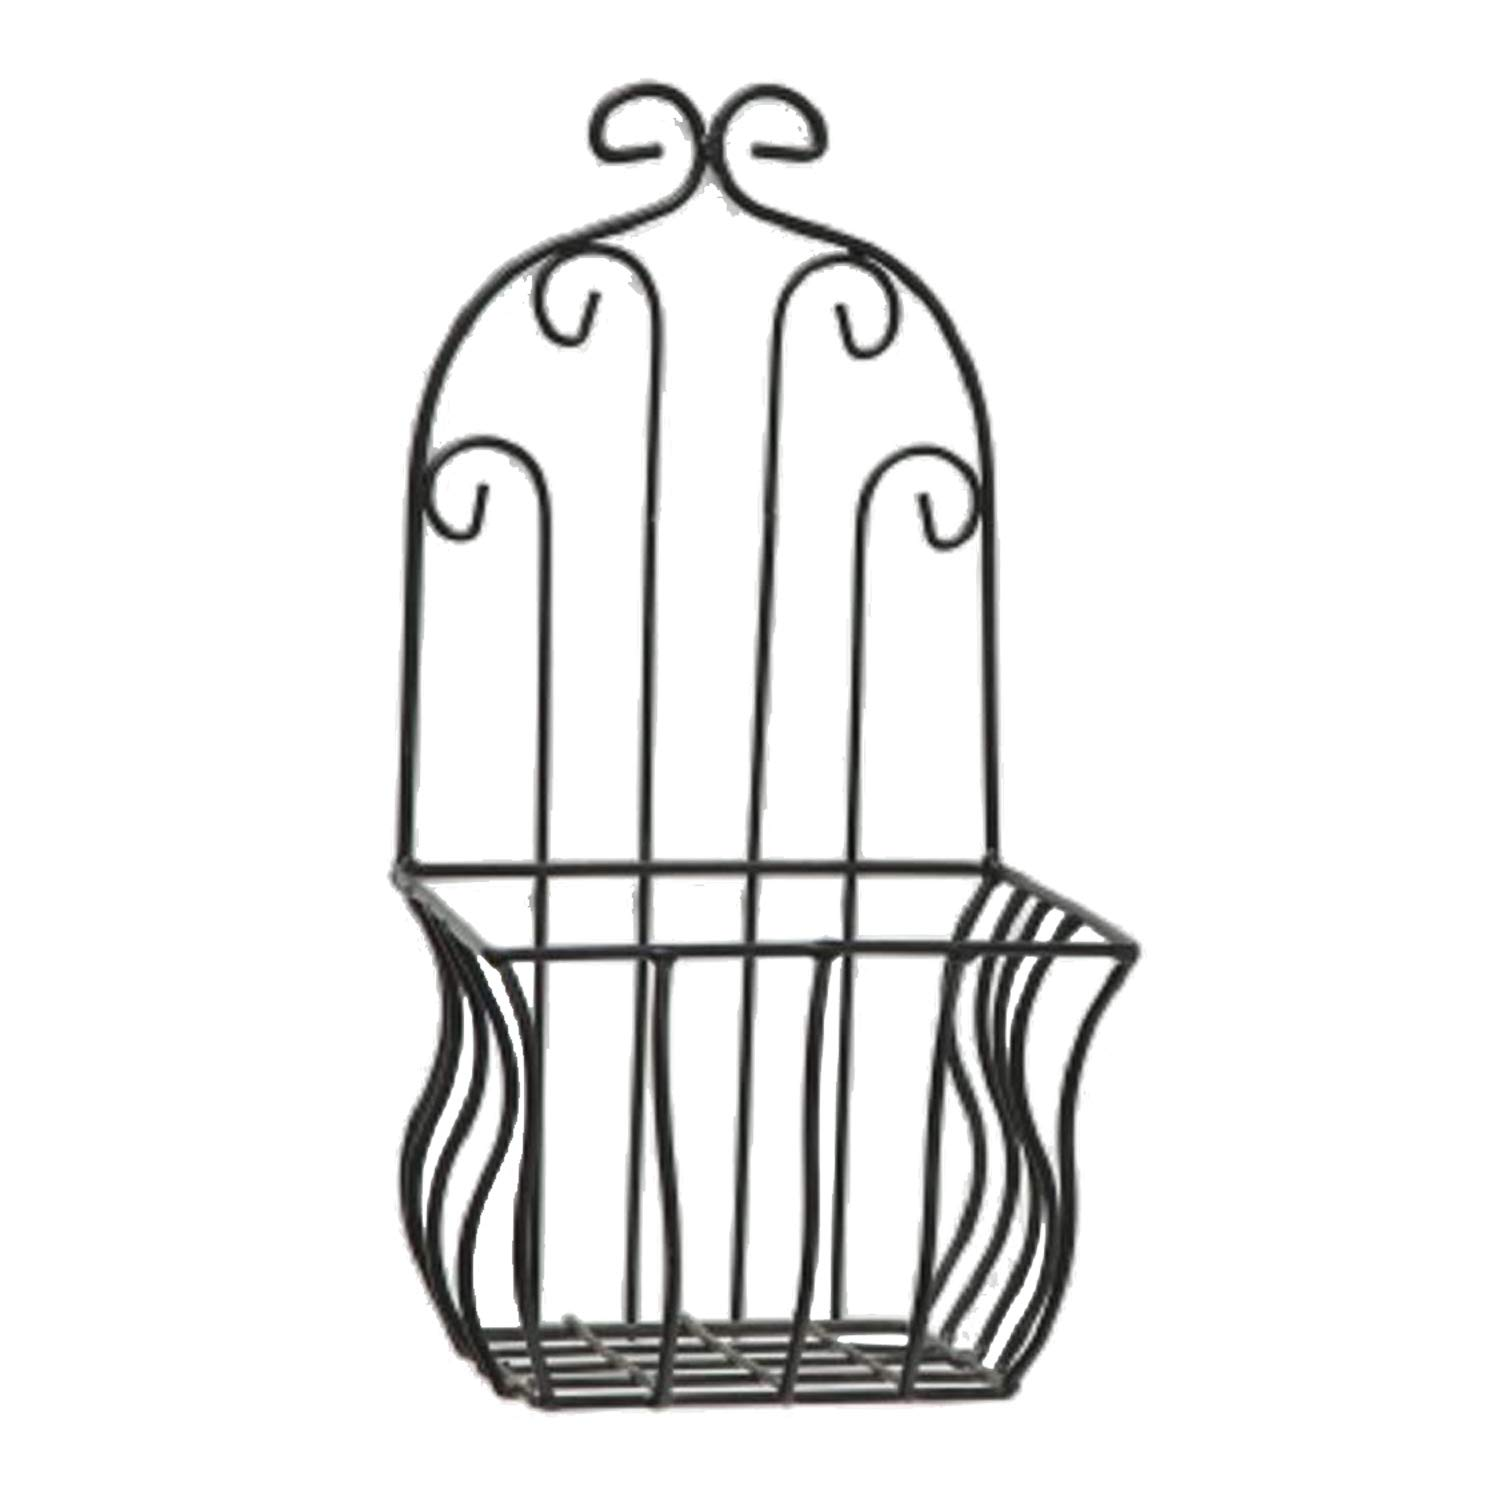 Home Collection Home Decoration Accessories Garden Terrace Set of 2 Plant Holders Black Wrought Iron